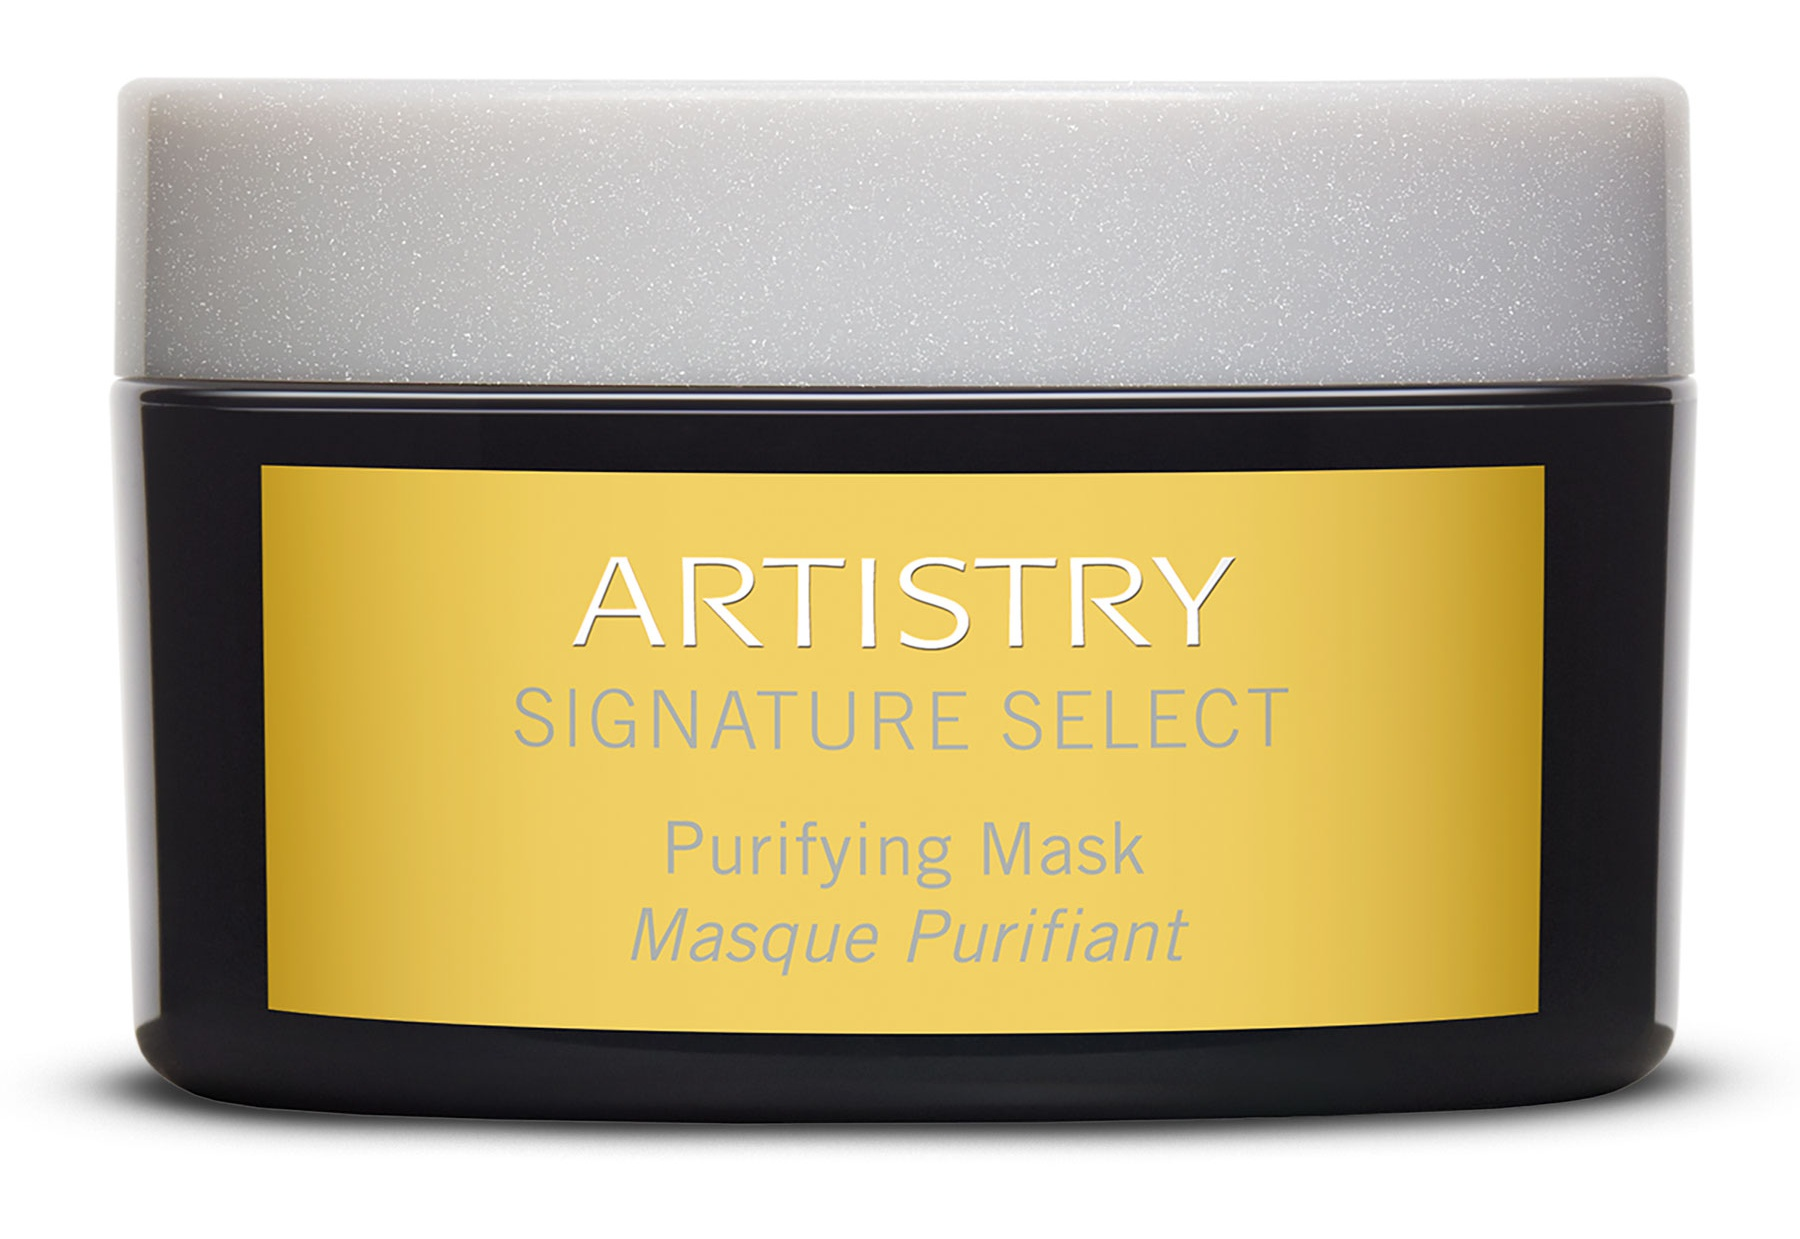 Artistry Signature Select Purifying Mask